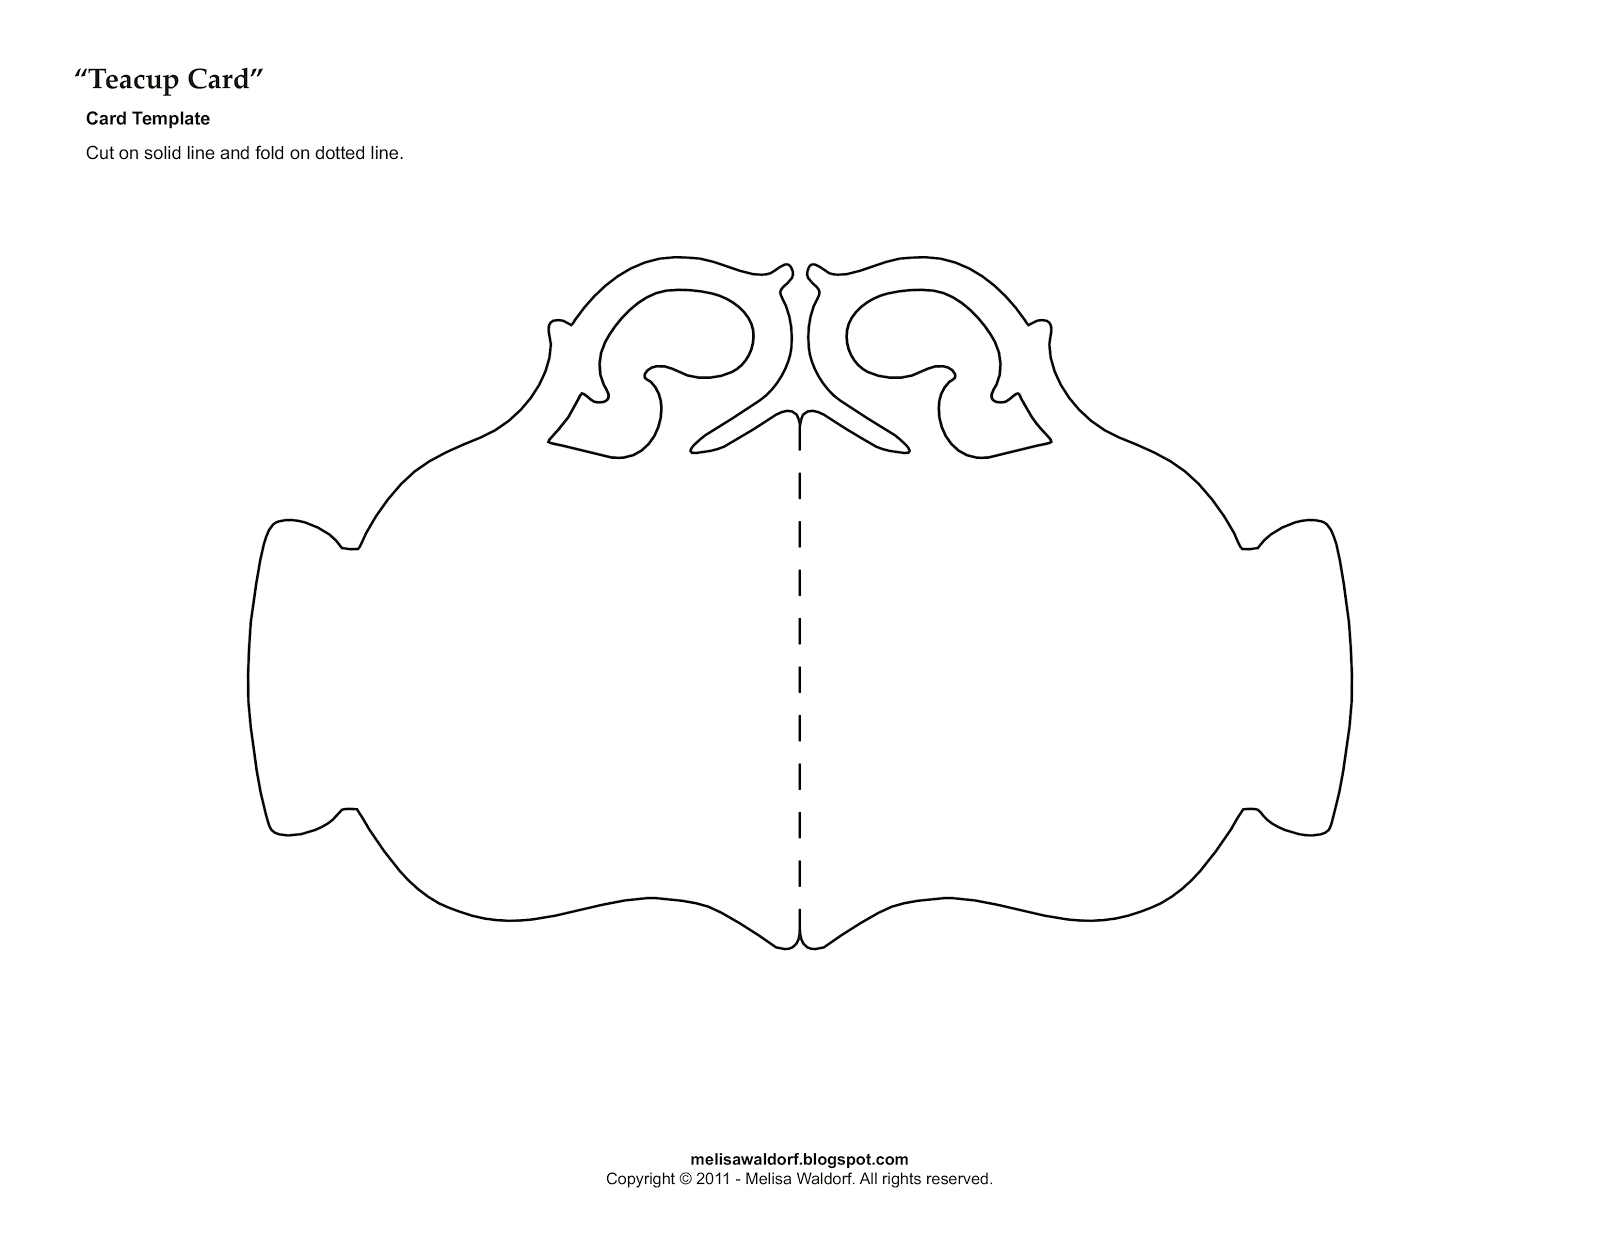 Template For Tea Cup | Teacup Magnolia | Projects To Try | Paper Tea - Free Printable Teacup Template